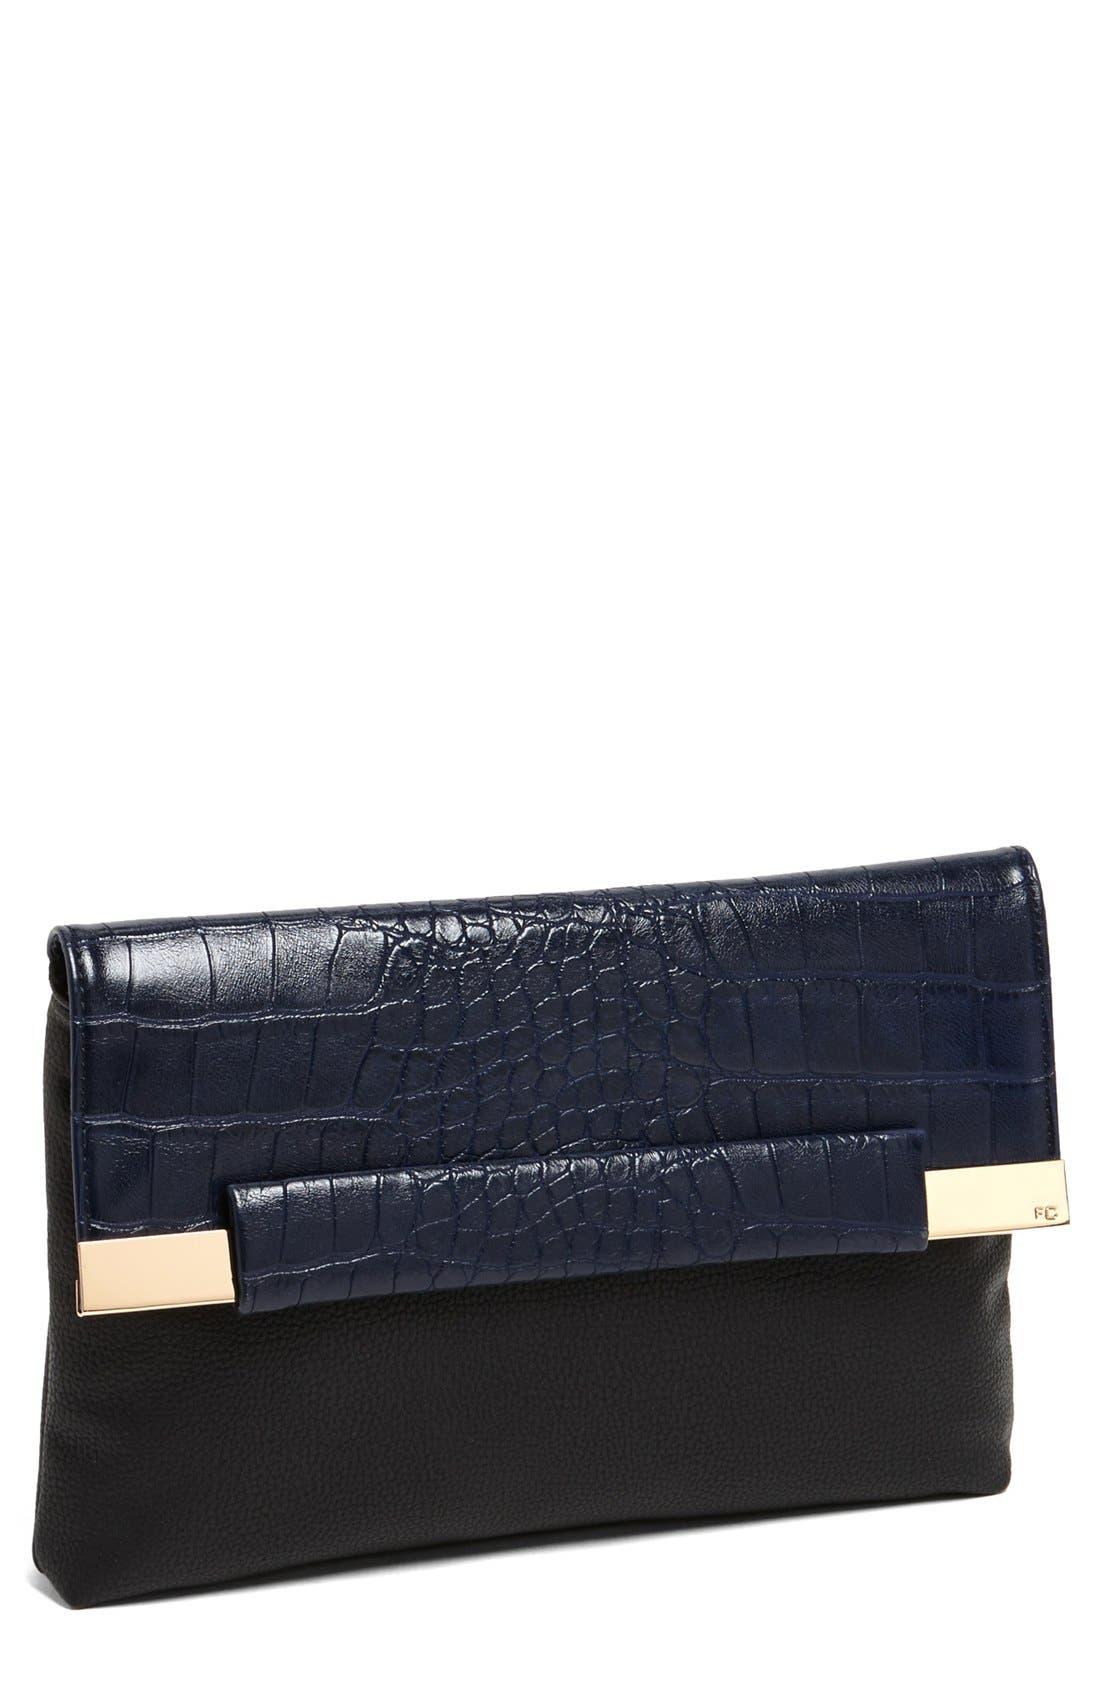 Main Image - French Connection 'Runaway' Clutch